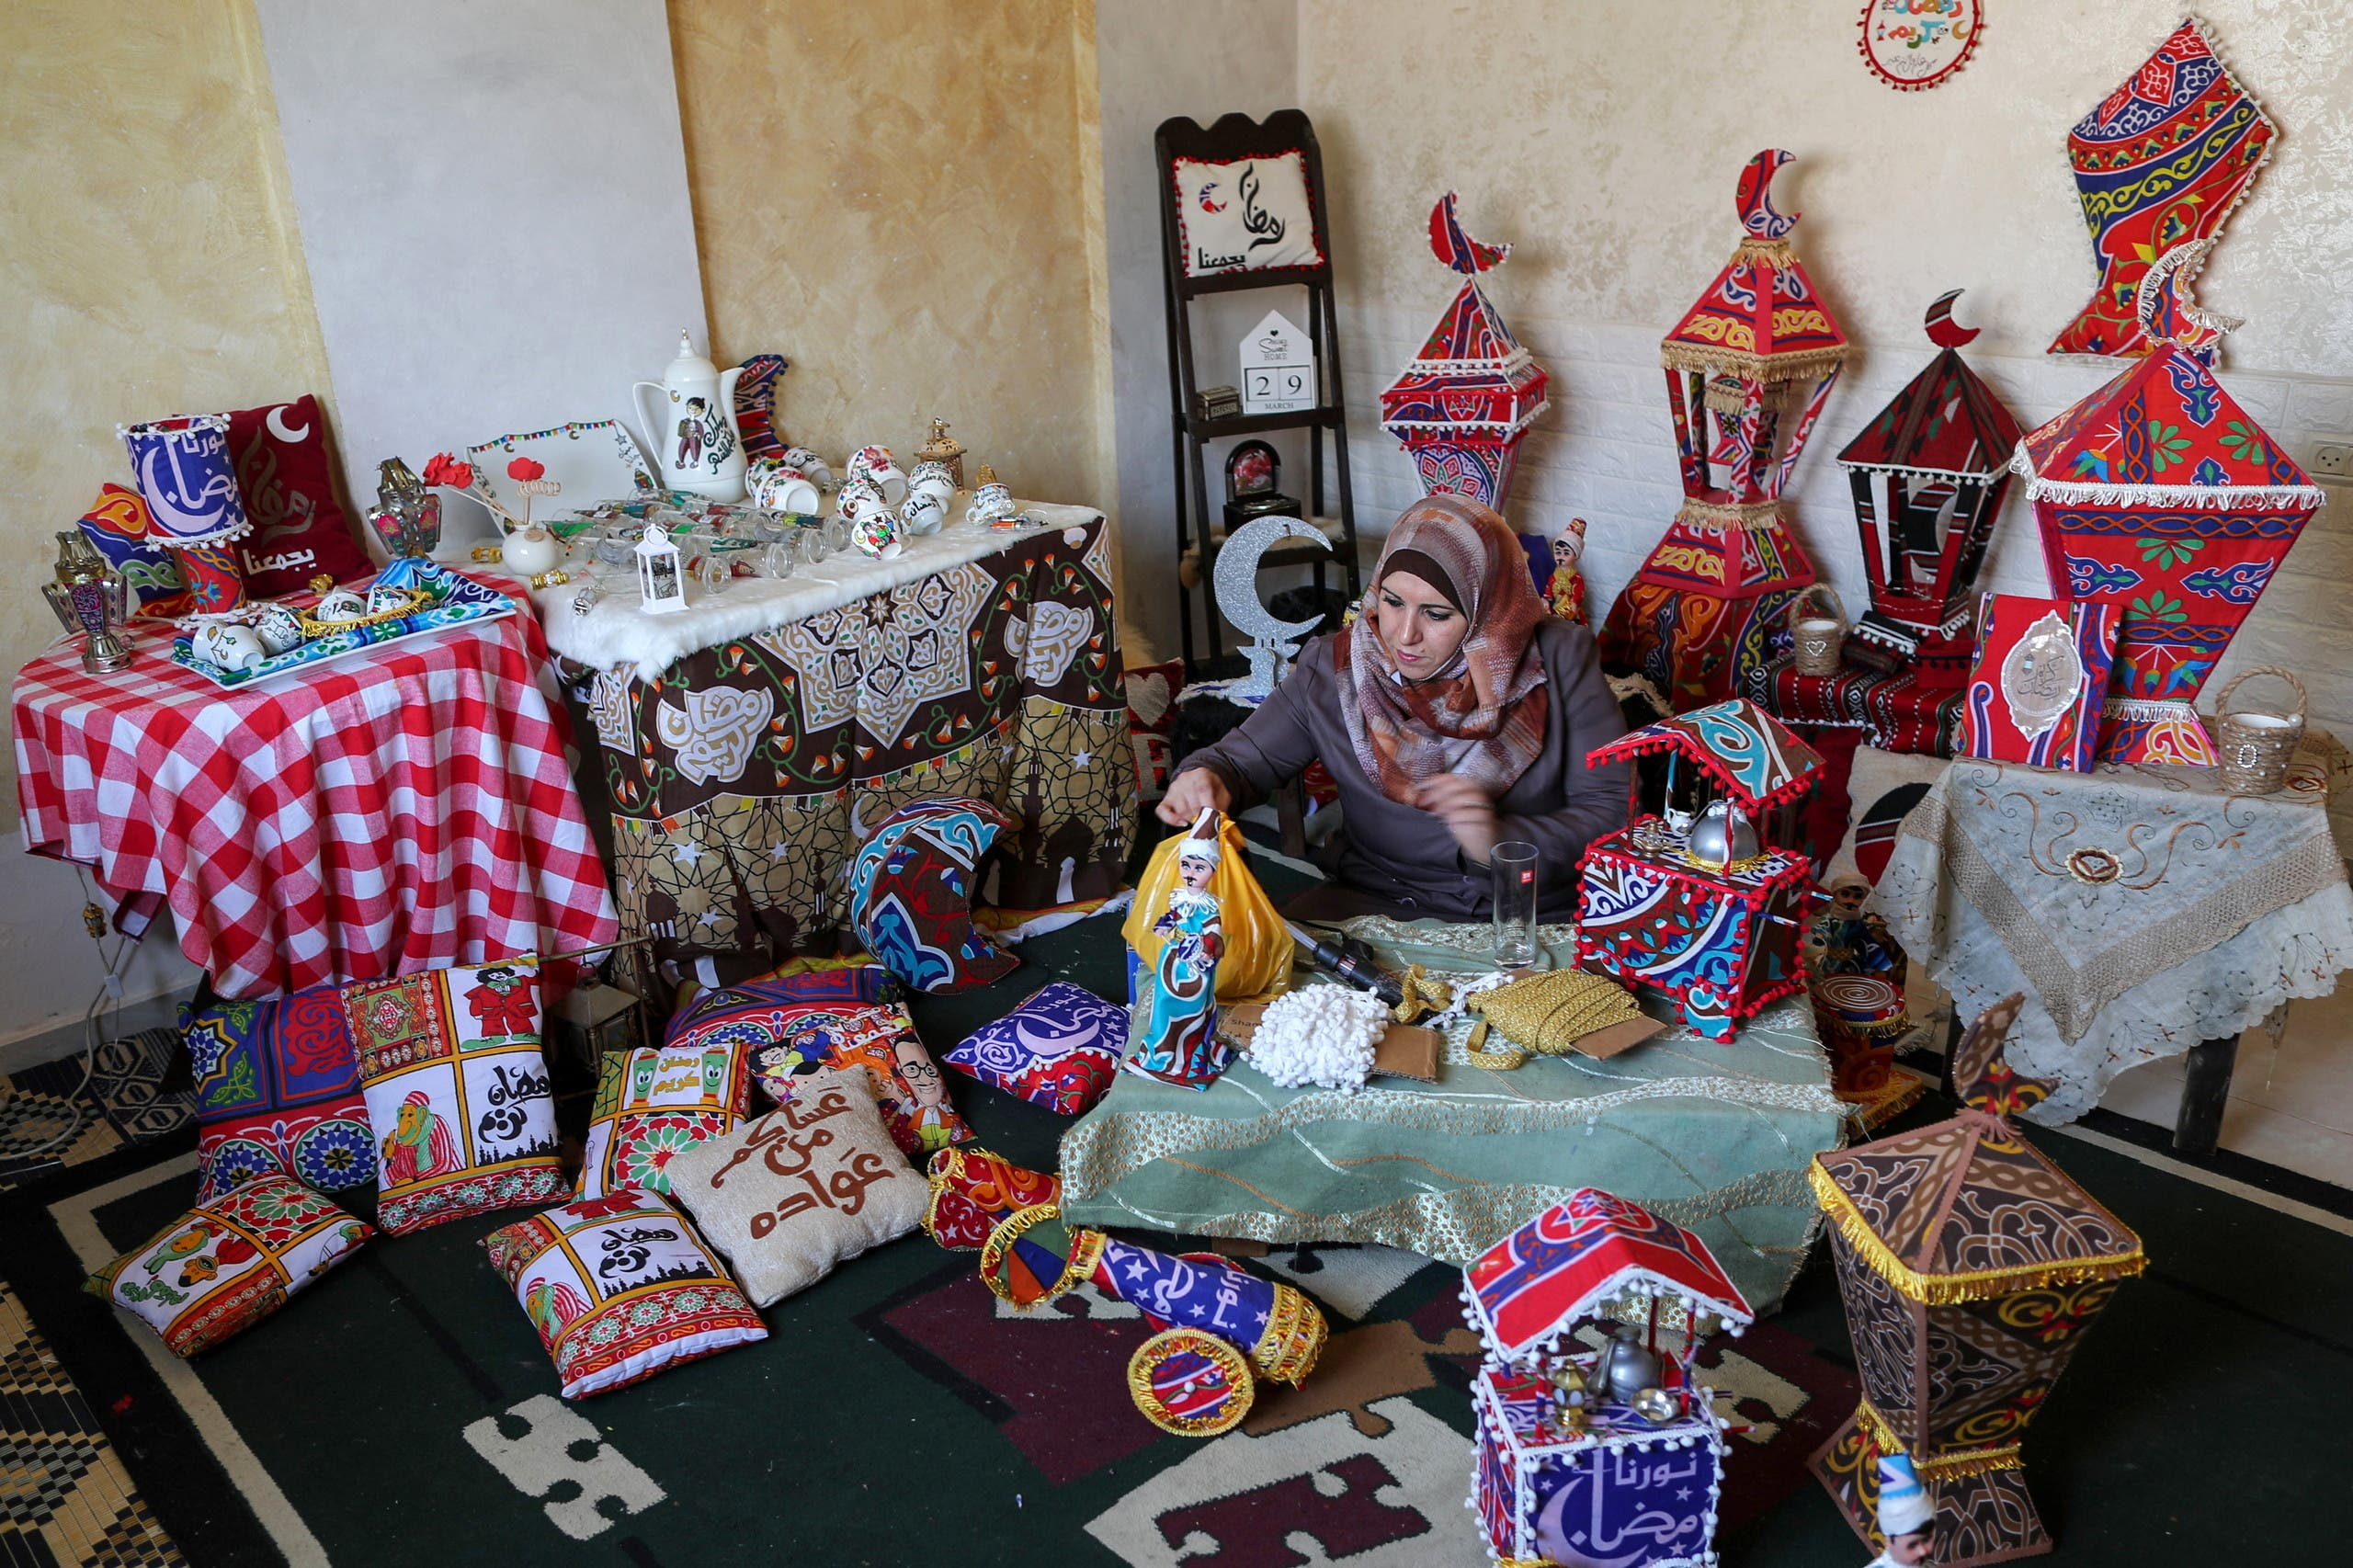 Palestinian Hanan Al-Madhoon makes decorations for sale ahead of the holy fasting month of Ramadan, at Beach refugee camp in Gaza City. (Reuters)